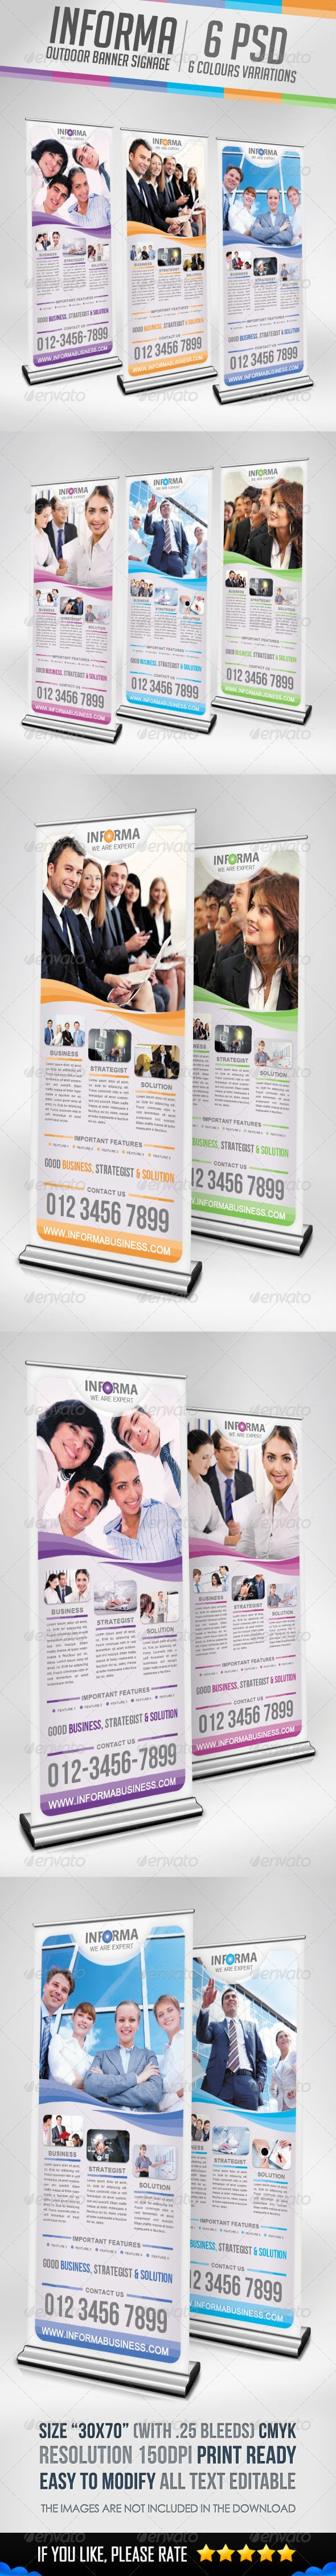 """Informa - Outdoor Banner Signage #GraphicRiver Informa Banner Signage template suitable for any kind of corporate & businesses with easily edit to fit your needs. :)) Informa Outdoor Banner Signage Features : 6 .PSD files & 6 Colours Variations Size """"30×70"""", with 0.25 bleed CMYK Color, 150 dpi Guide lines Print Ready All Text Editable Well Organized Free Font Used, Link in Package download Image Stock if you want used, Link in Package download Please Don't Forget it to RATE ITEM when…"""